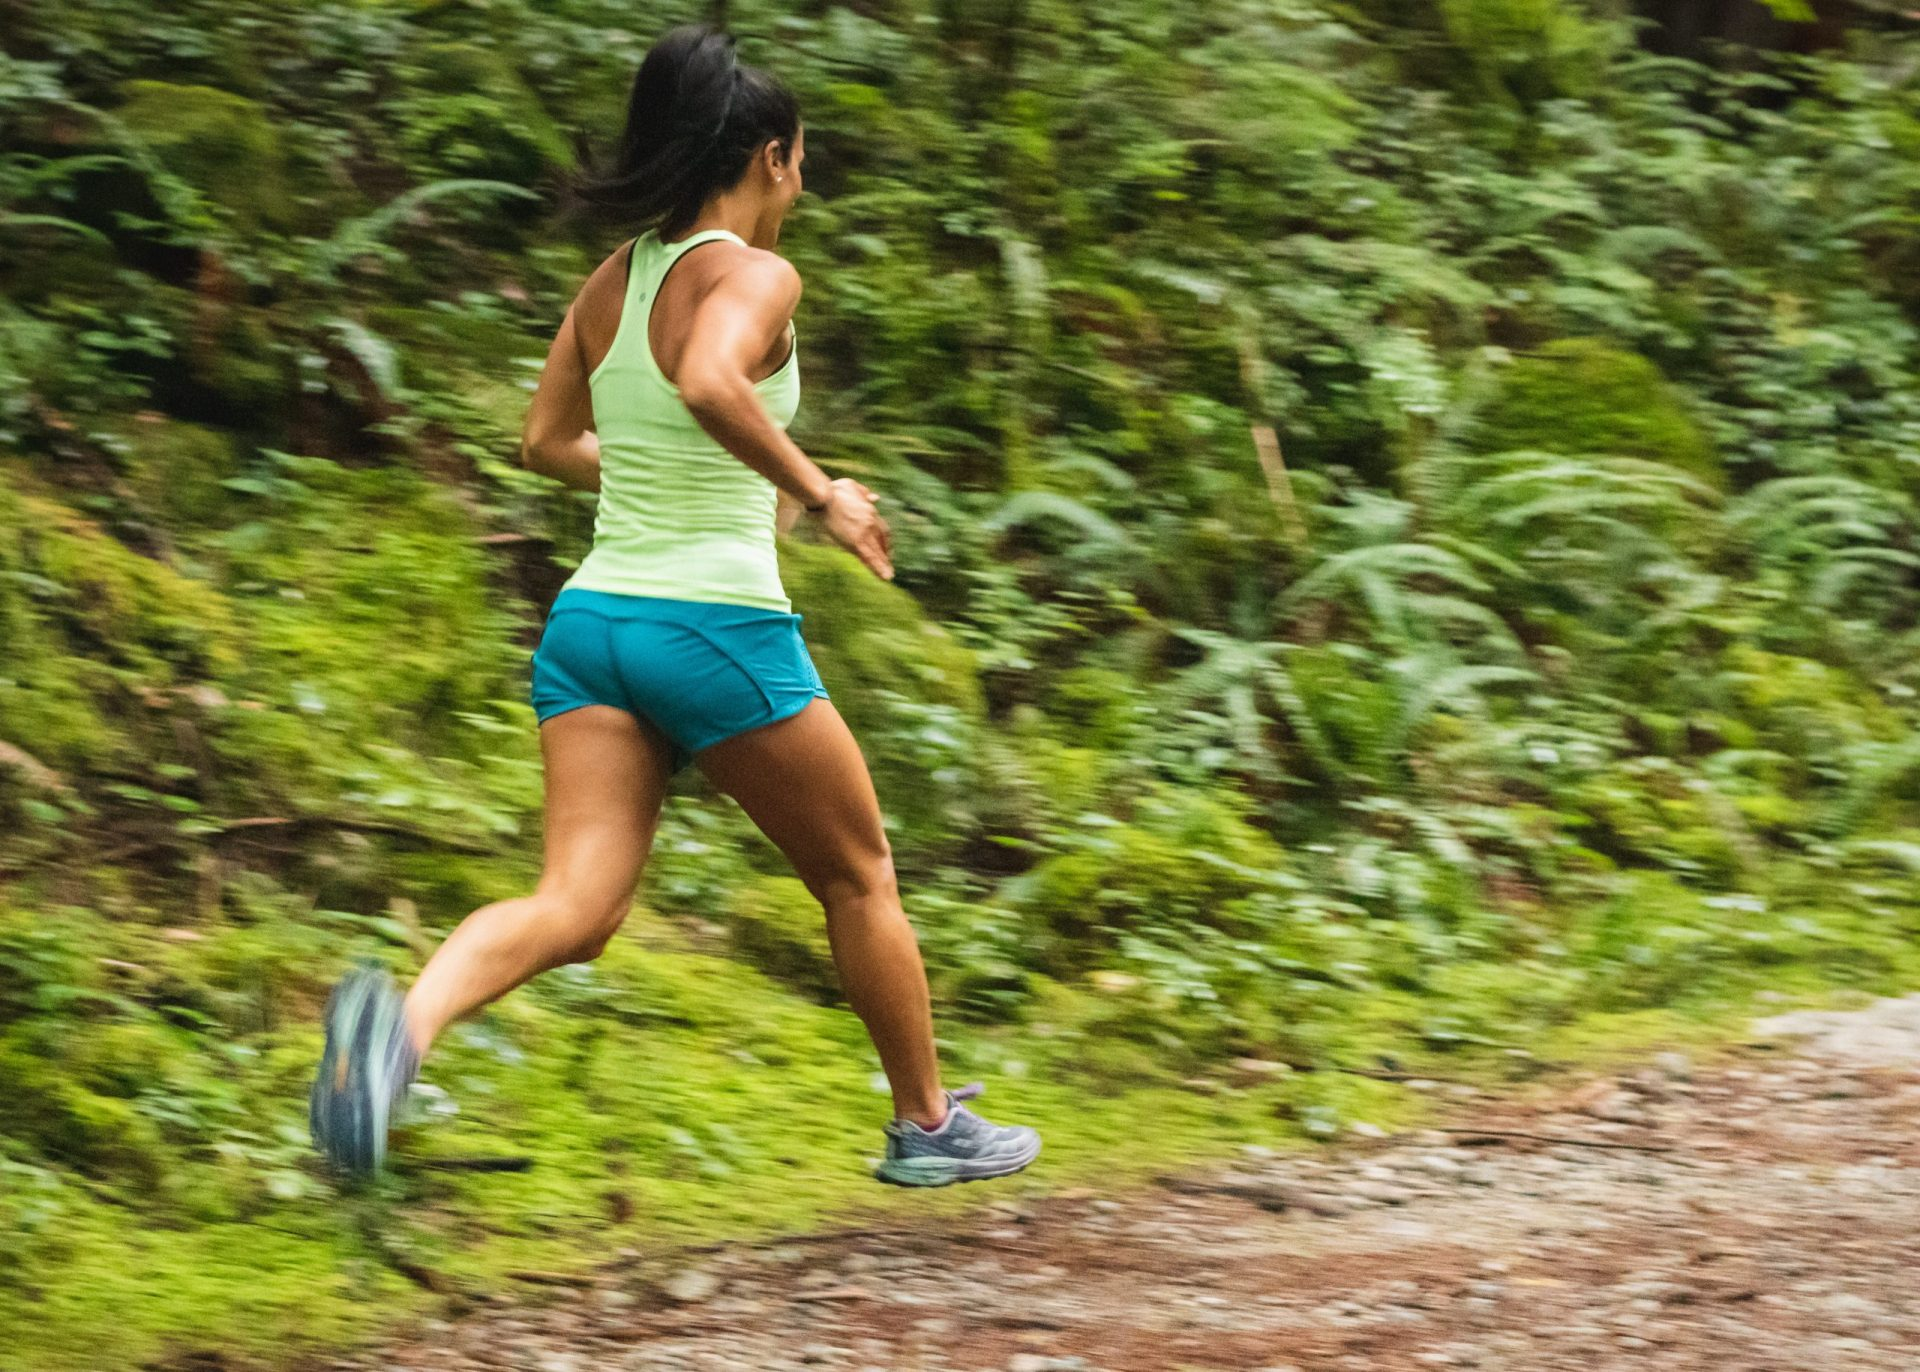 Healthy woman running through a dirt trail to stay fit | Luxury Homes by Brittany Corporation